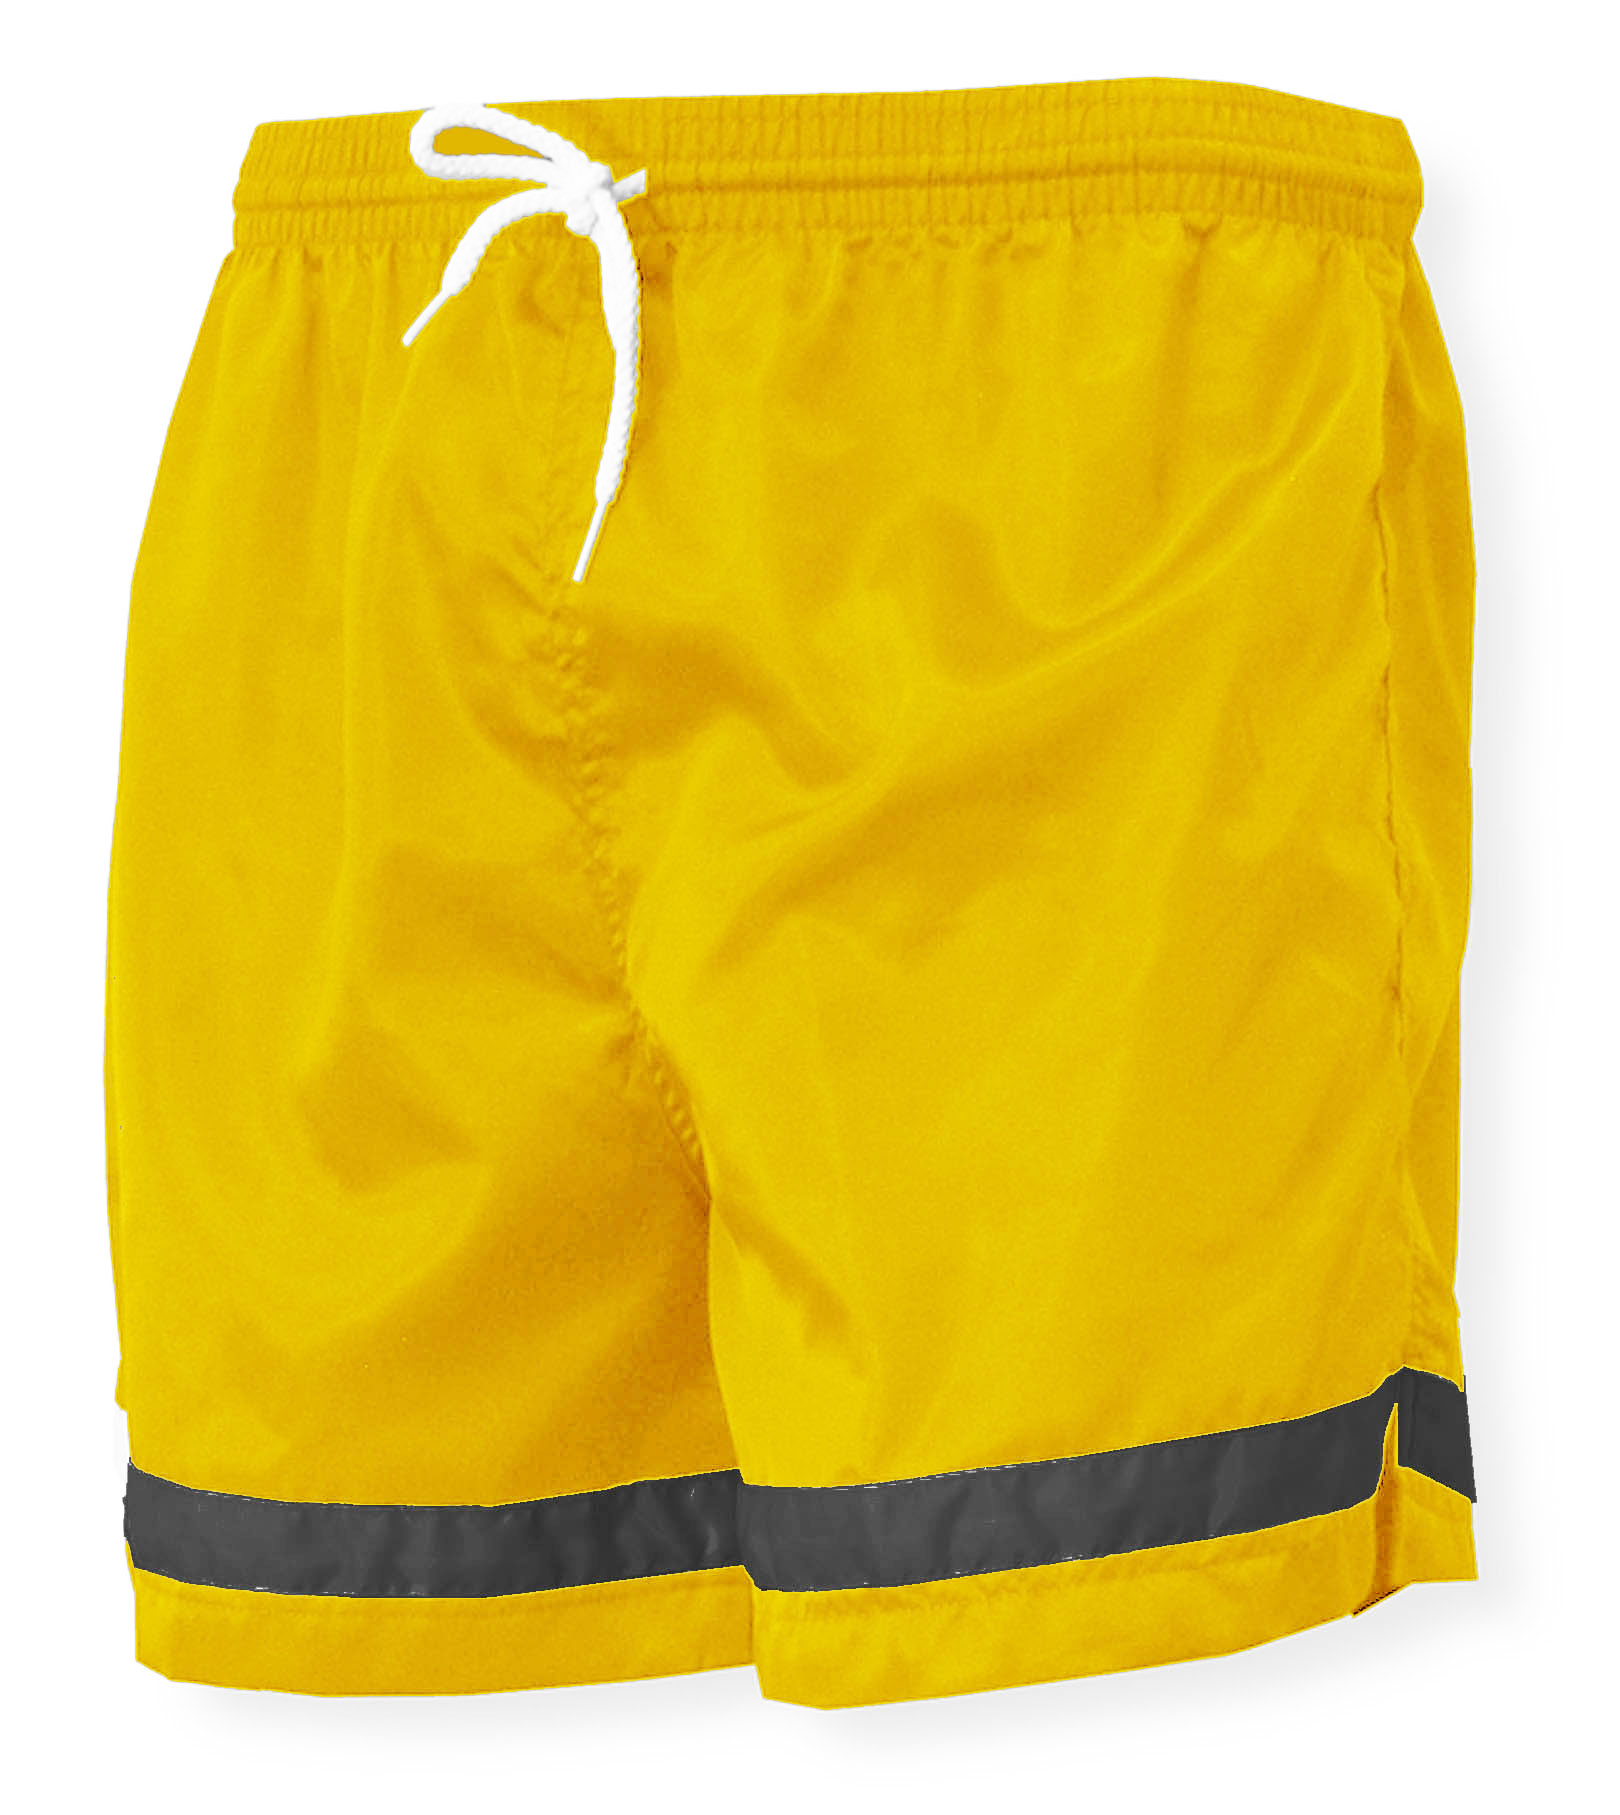 Vashon nylon soccer shorts in gold/black by Code Four Athletics